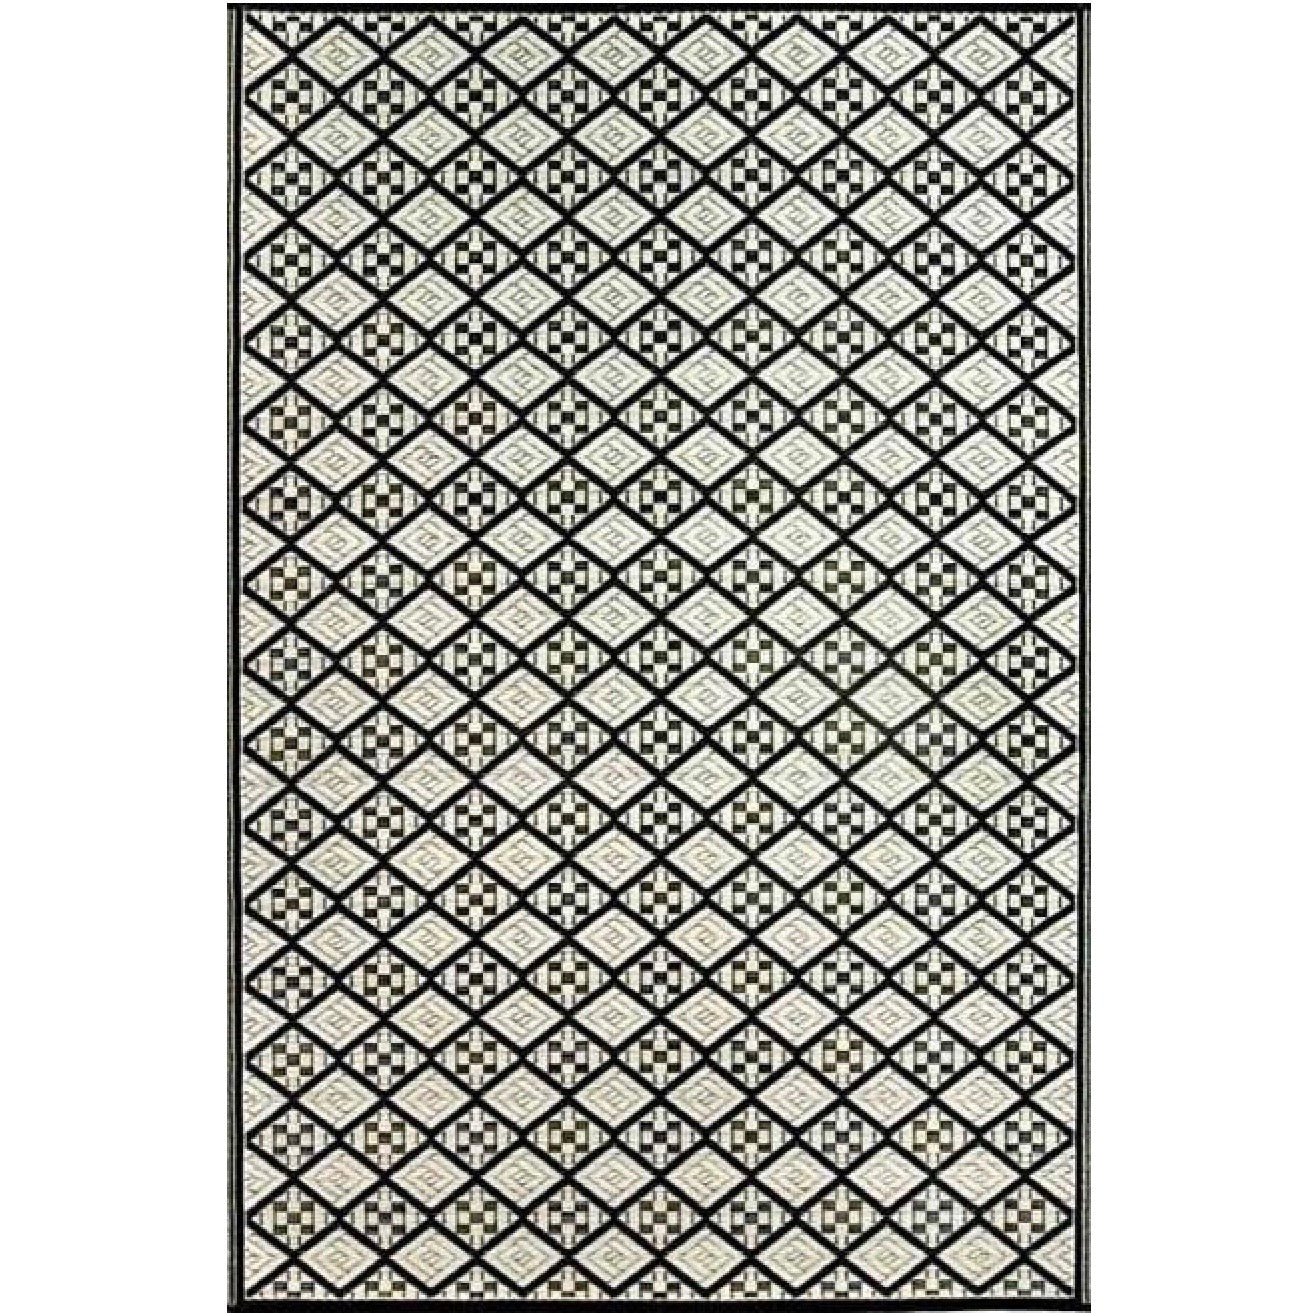 Mad Mats Outdoor Carpet Geometric Scotch - Black White